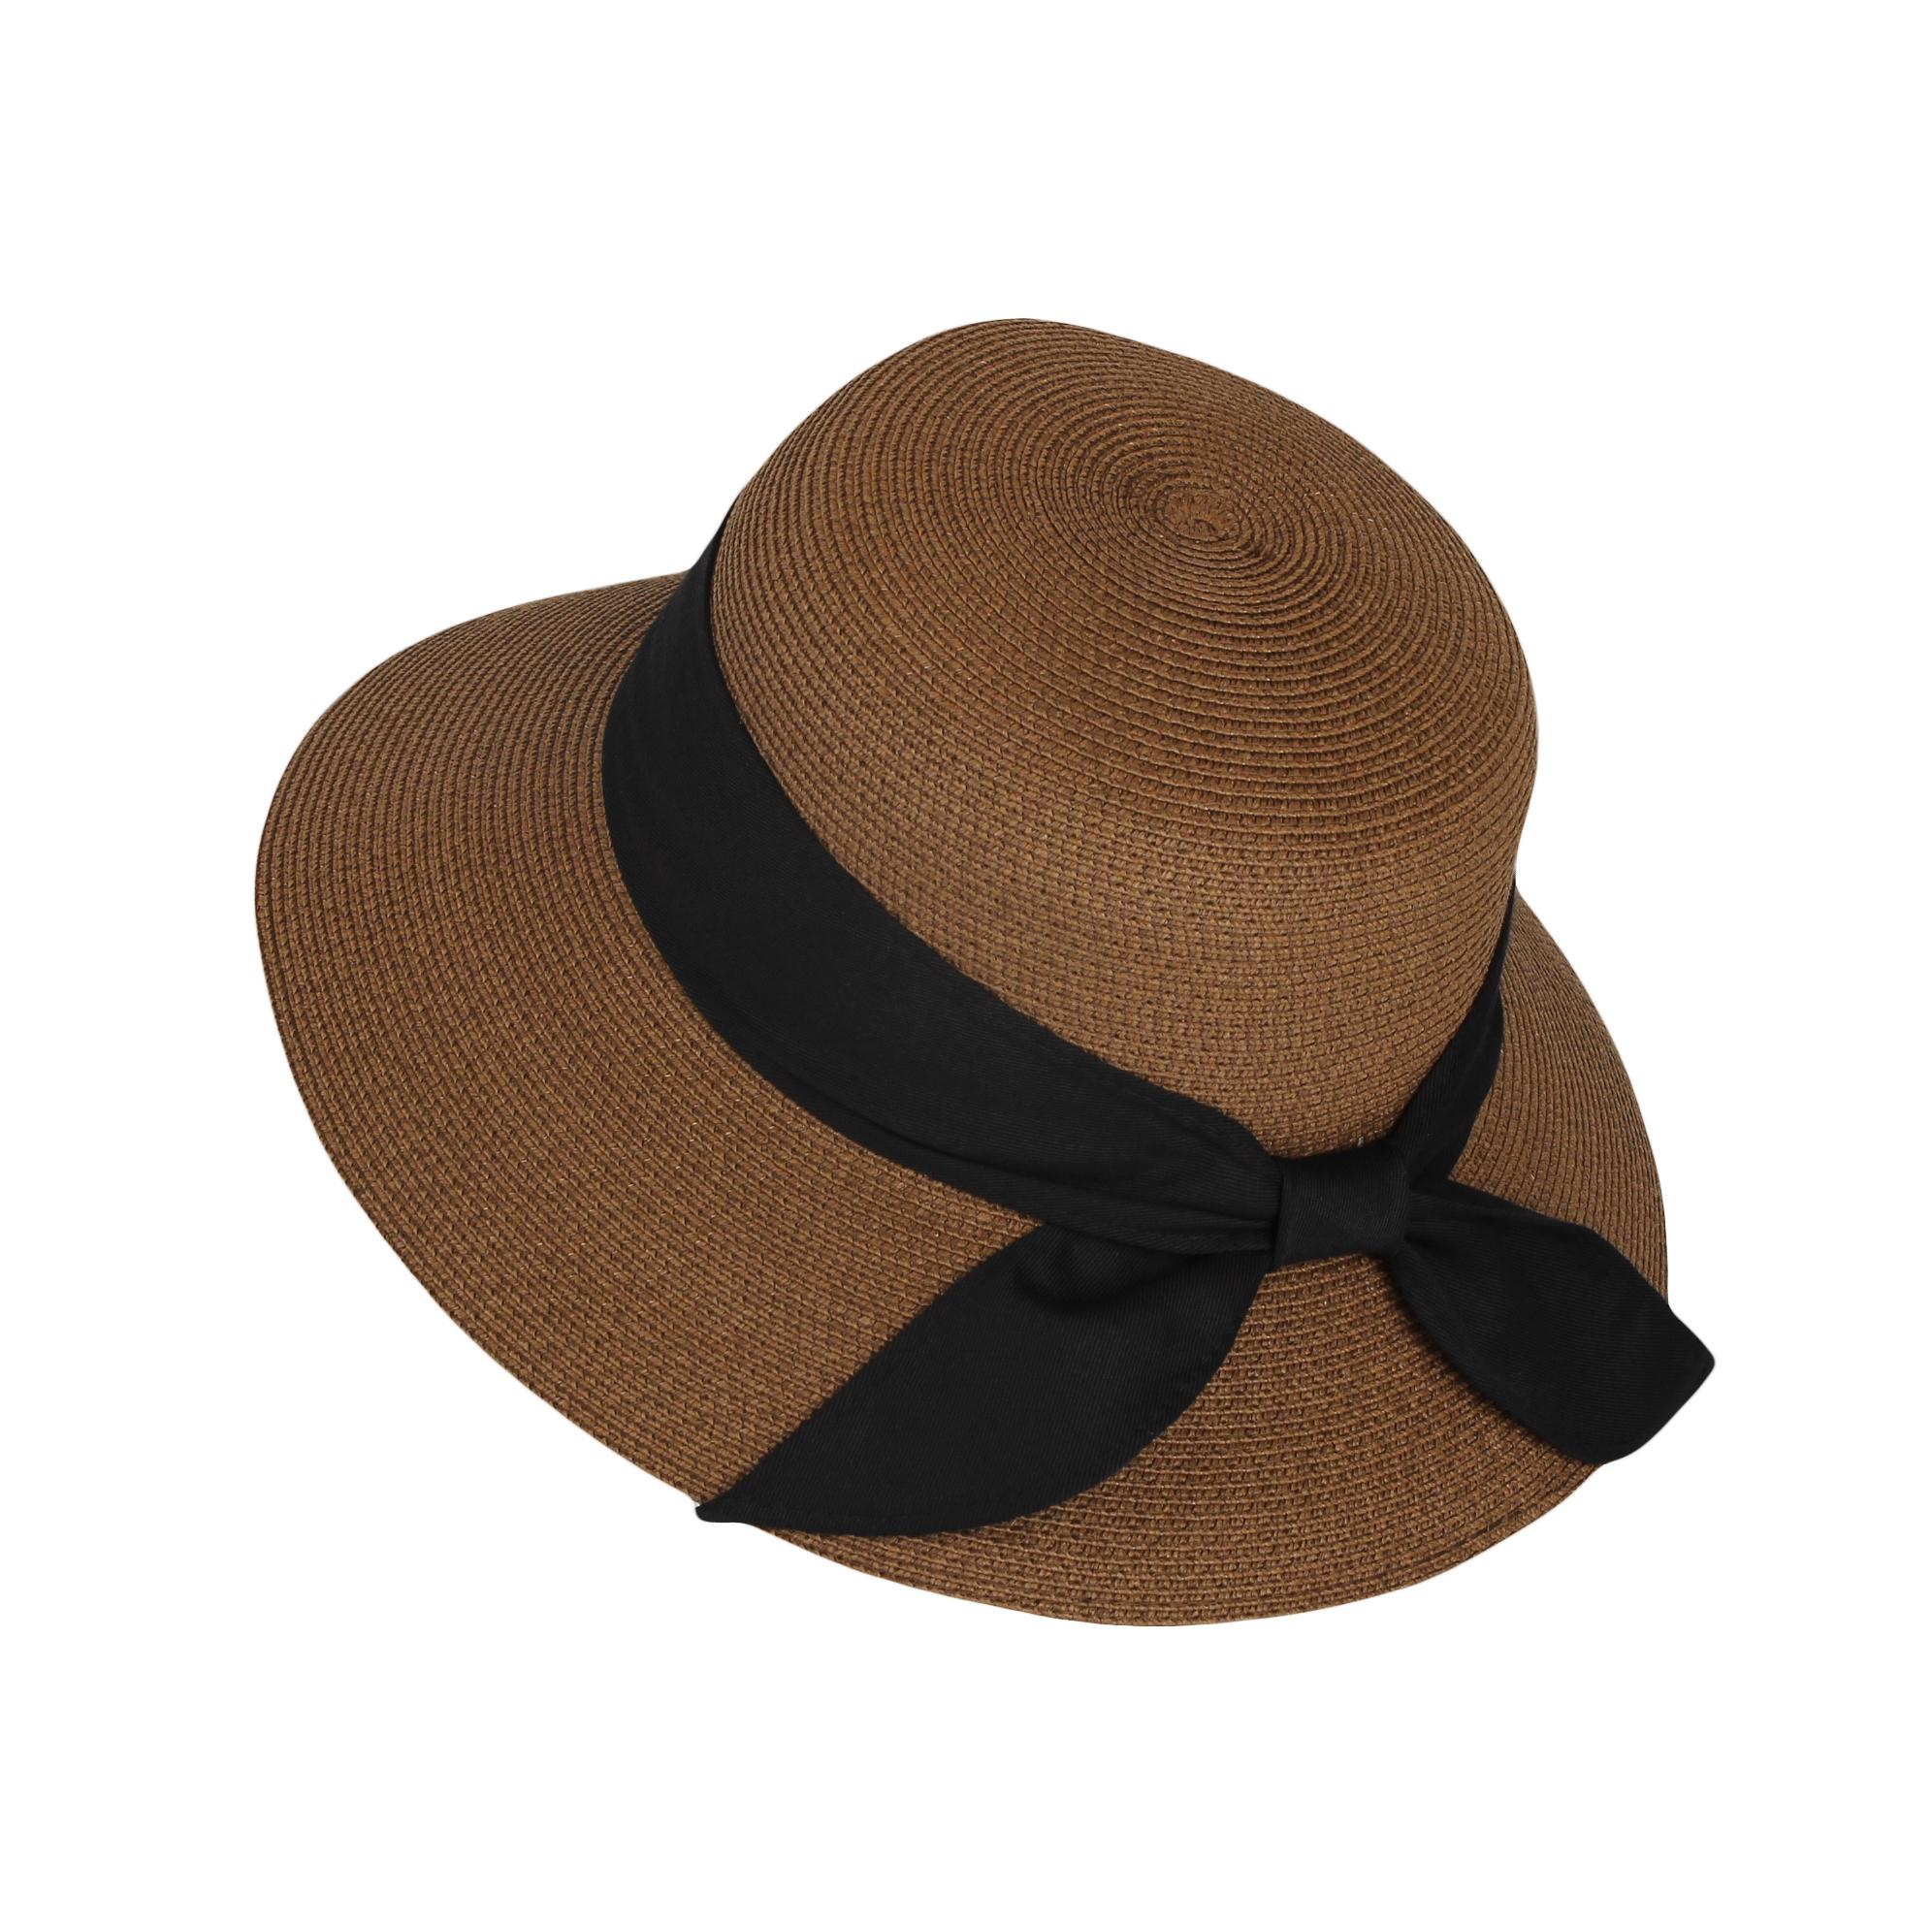 a2413771d WITHMOONS Floppy Summer Beach Sun Hat Paper Straw Ribbon Banded KR91202  (Beige)